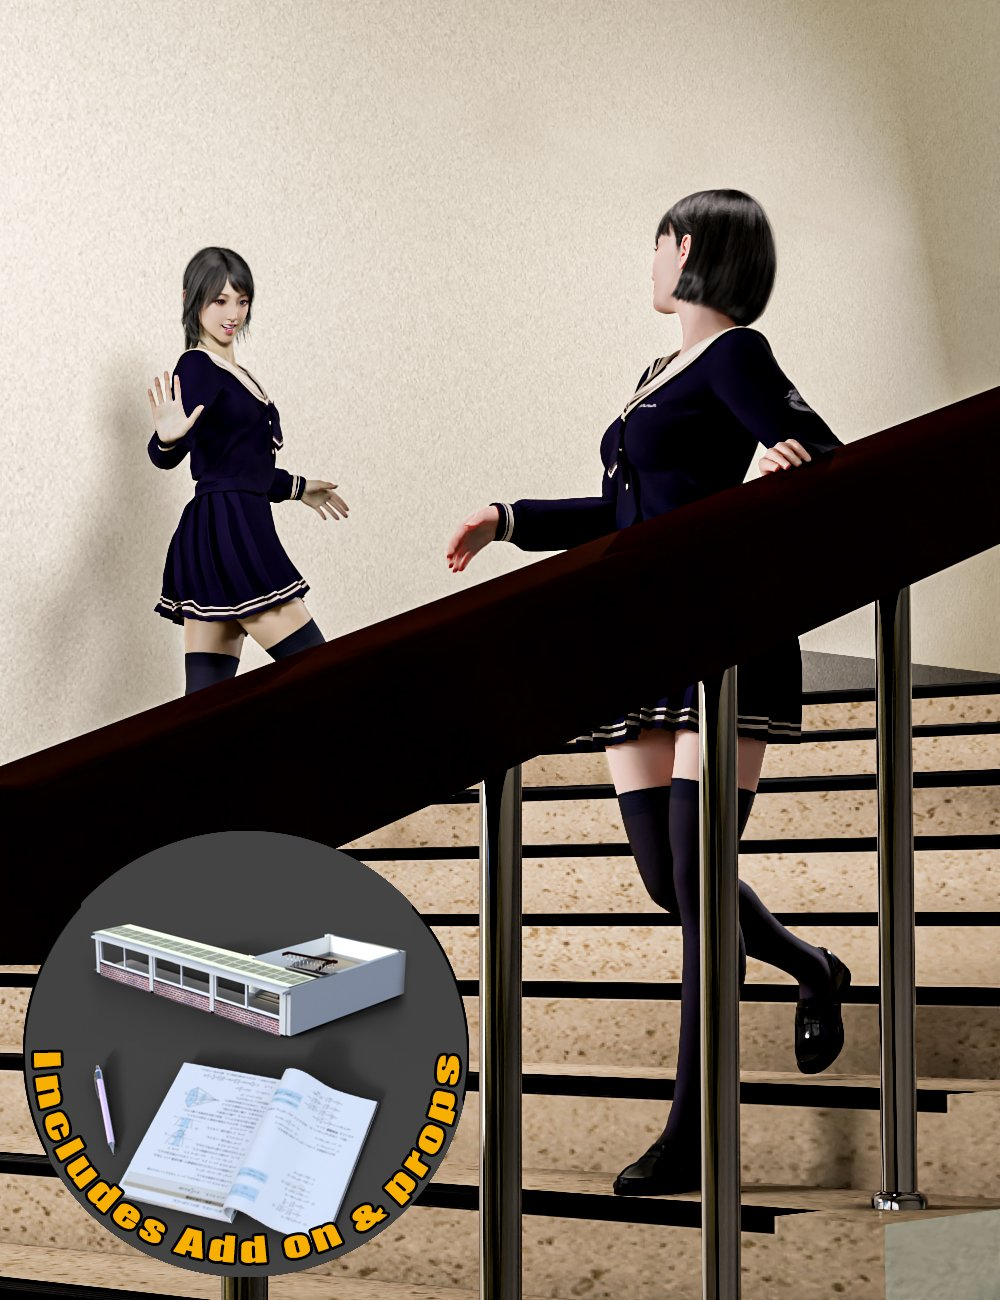 Japanese Neat Classroom Poses and Add on for Genesis 8 Female by: mossberg, 3D Models by Daz 3D